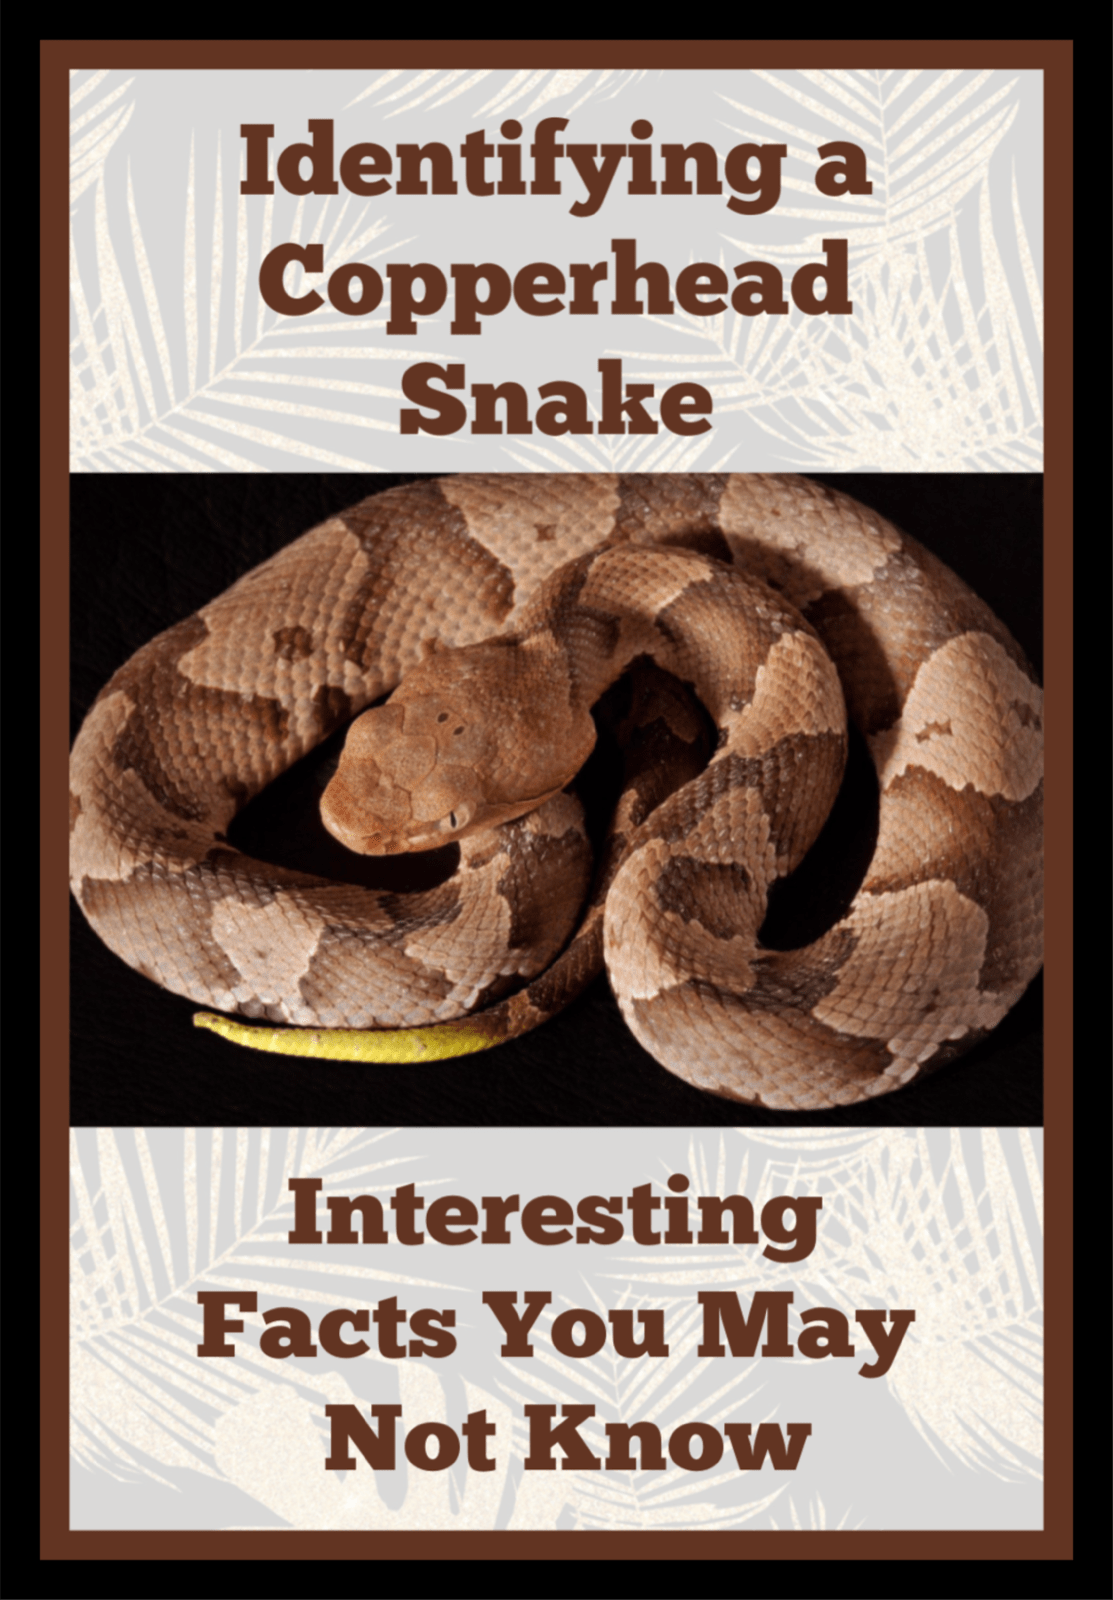 3654d5824ec3e0bc9f2366e2ffdd3dda - How To Get Rid Of Copperhead Snakes In Your Yard